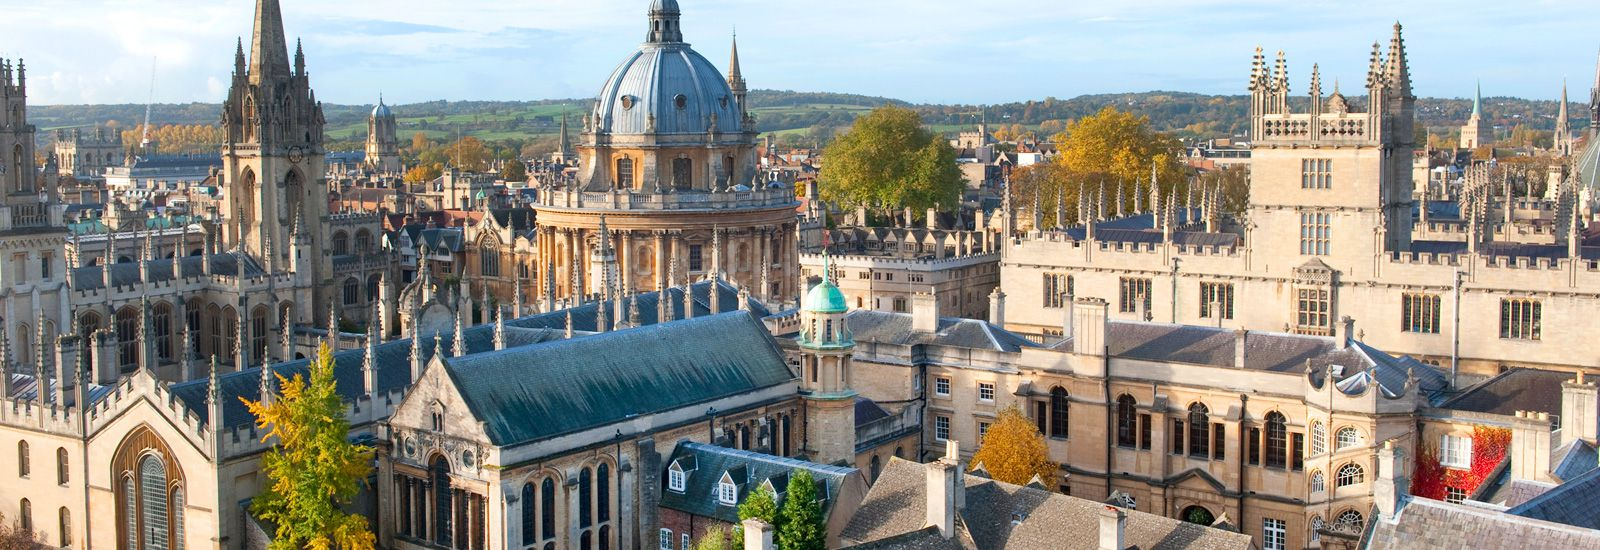 Class and regional divides: the Oxford outsiders